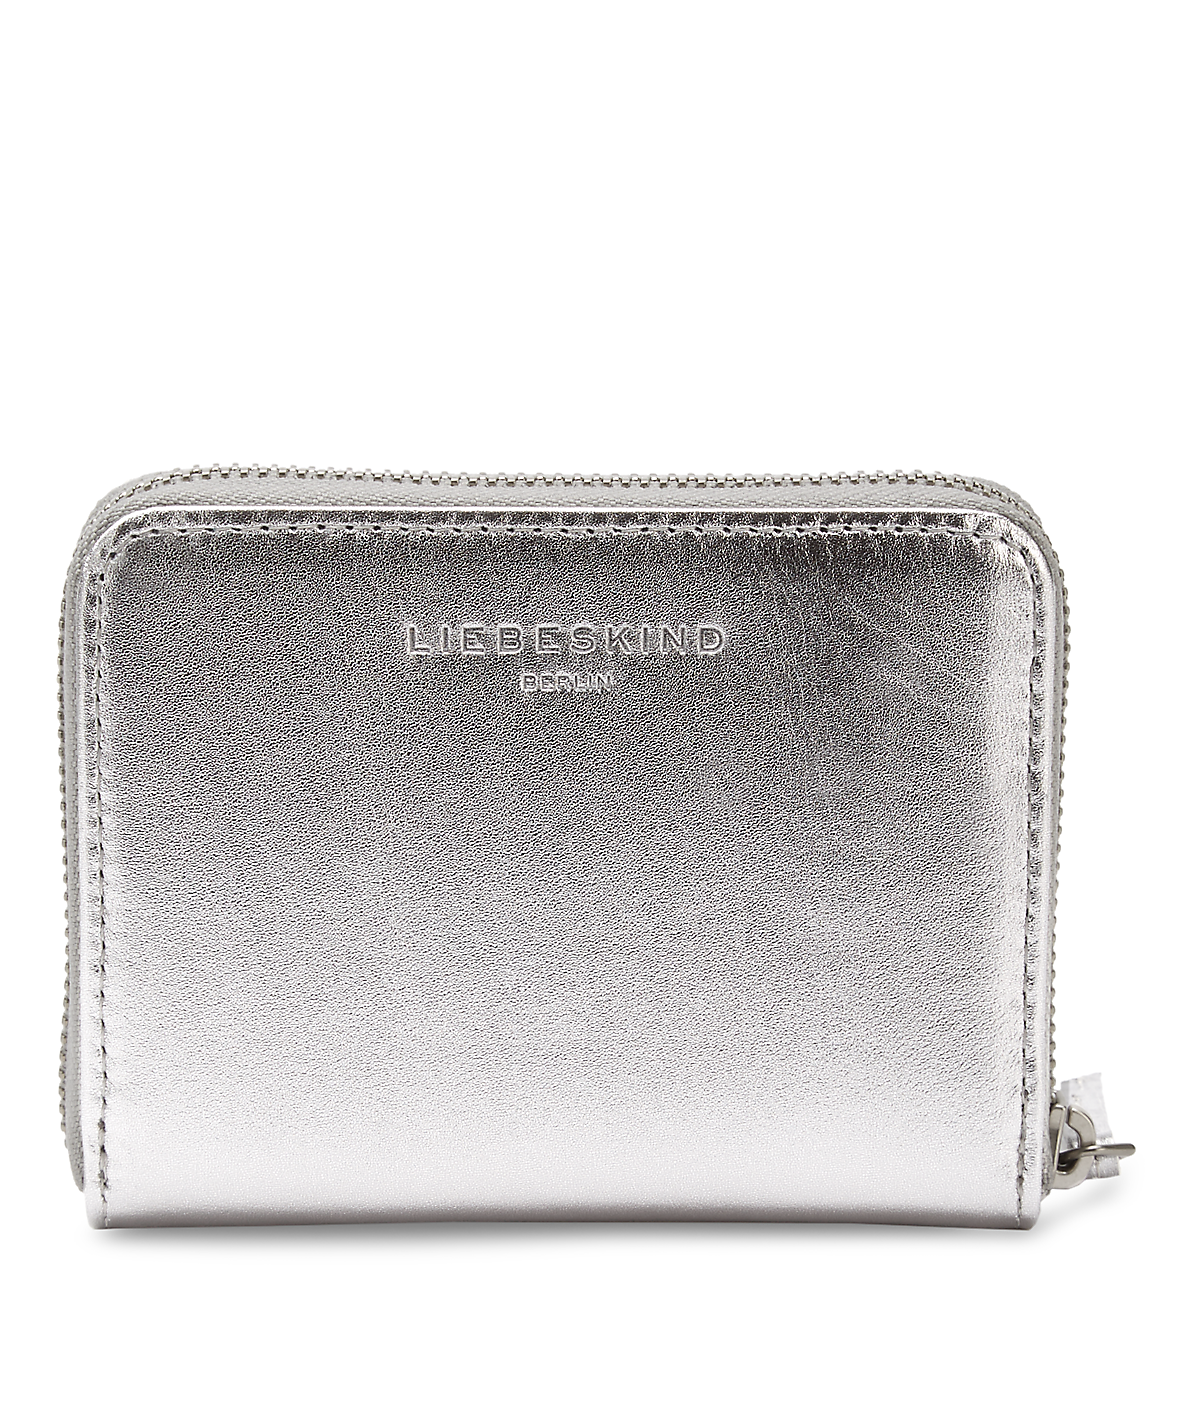 Conny purse from liebeskind